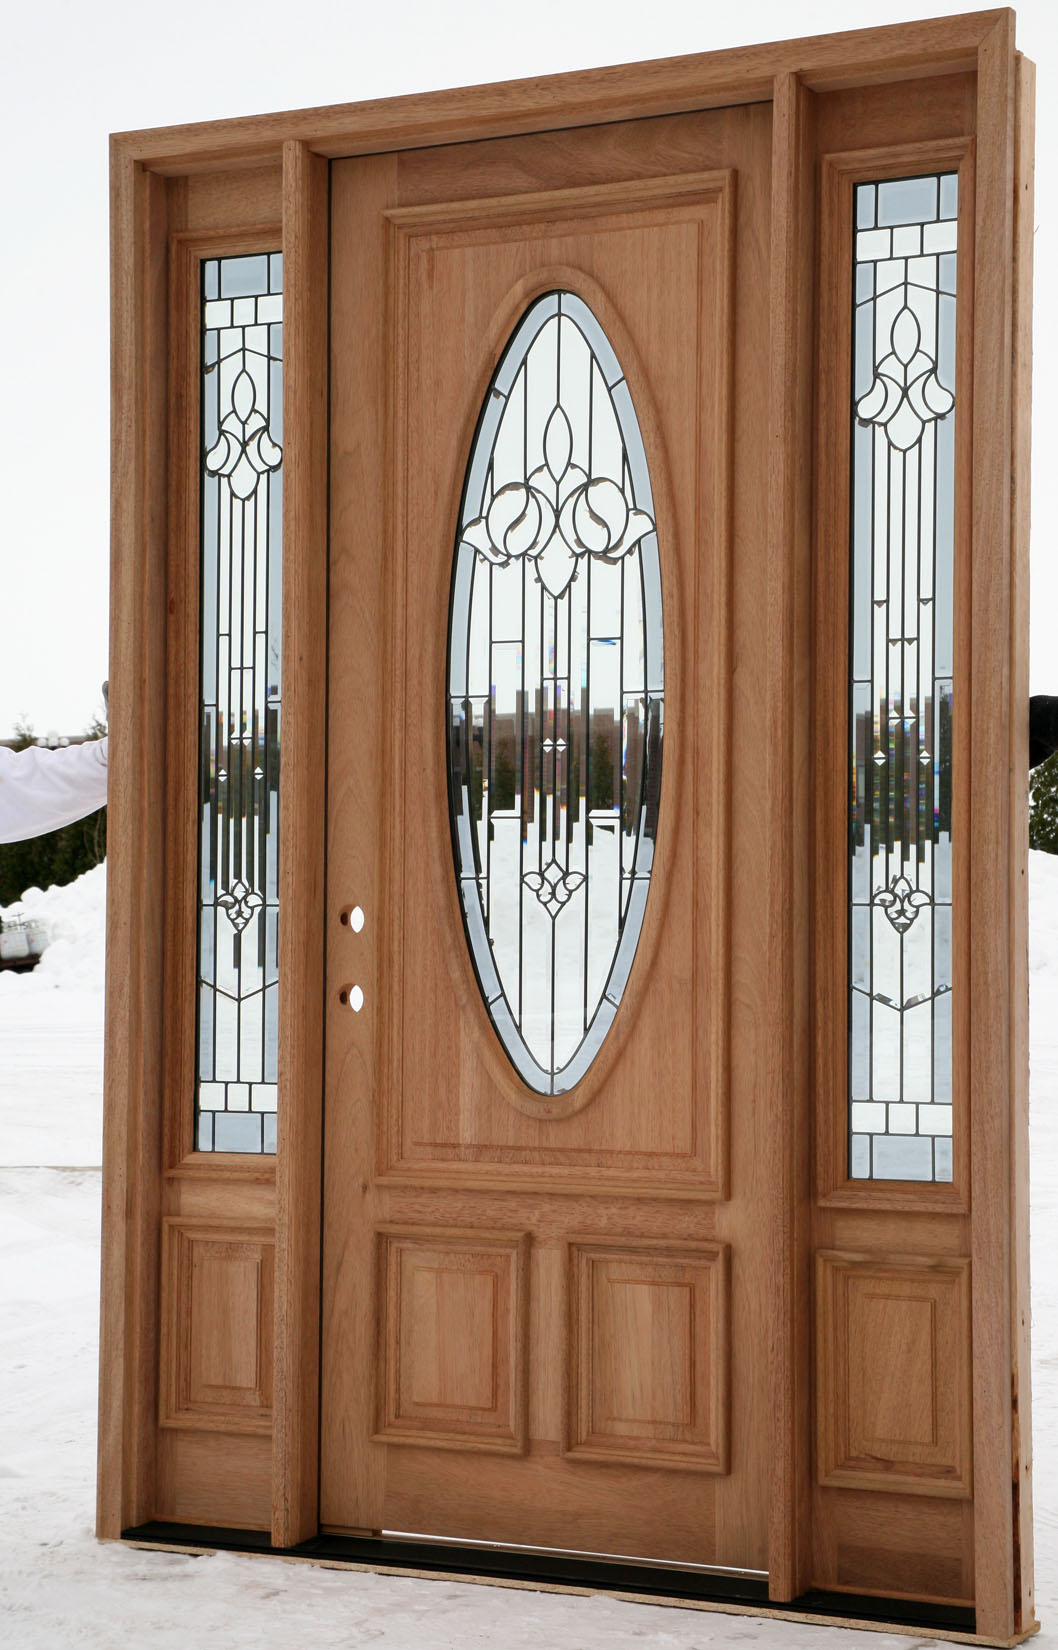 Wood Entry Doors With Side Lights 1058 X 1650 271 Kb Jpeg